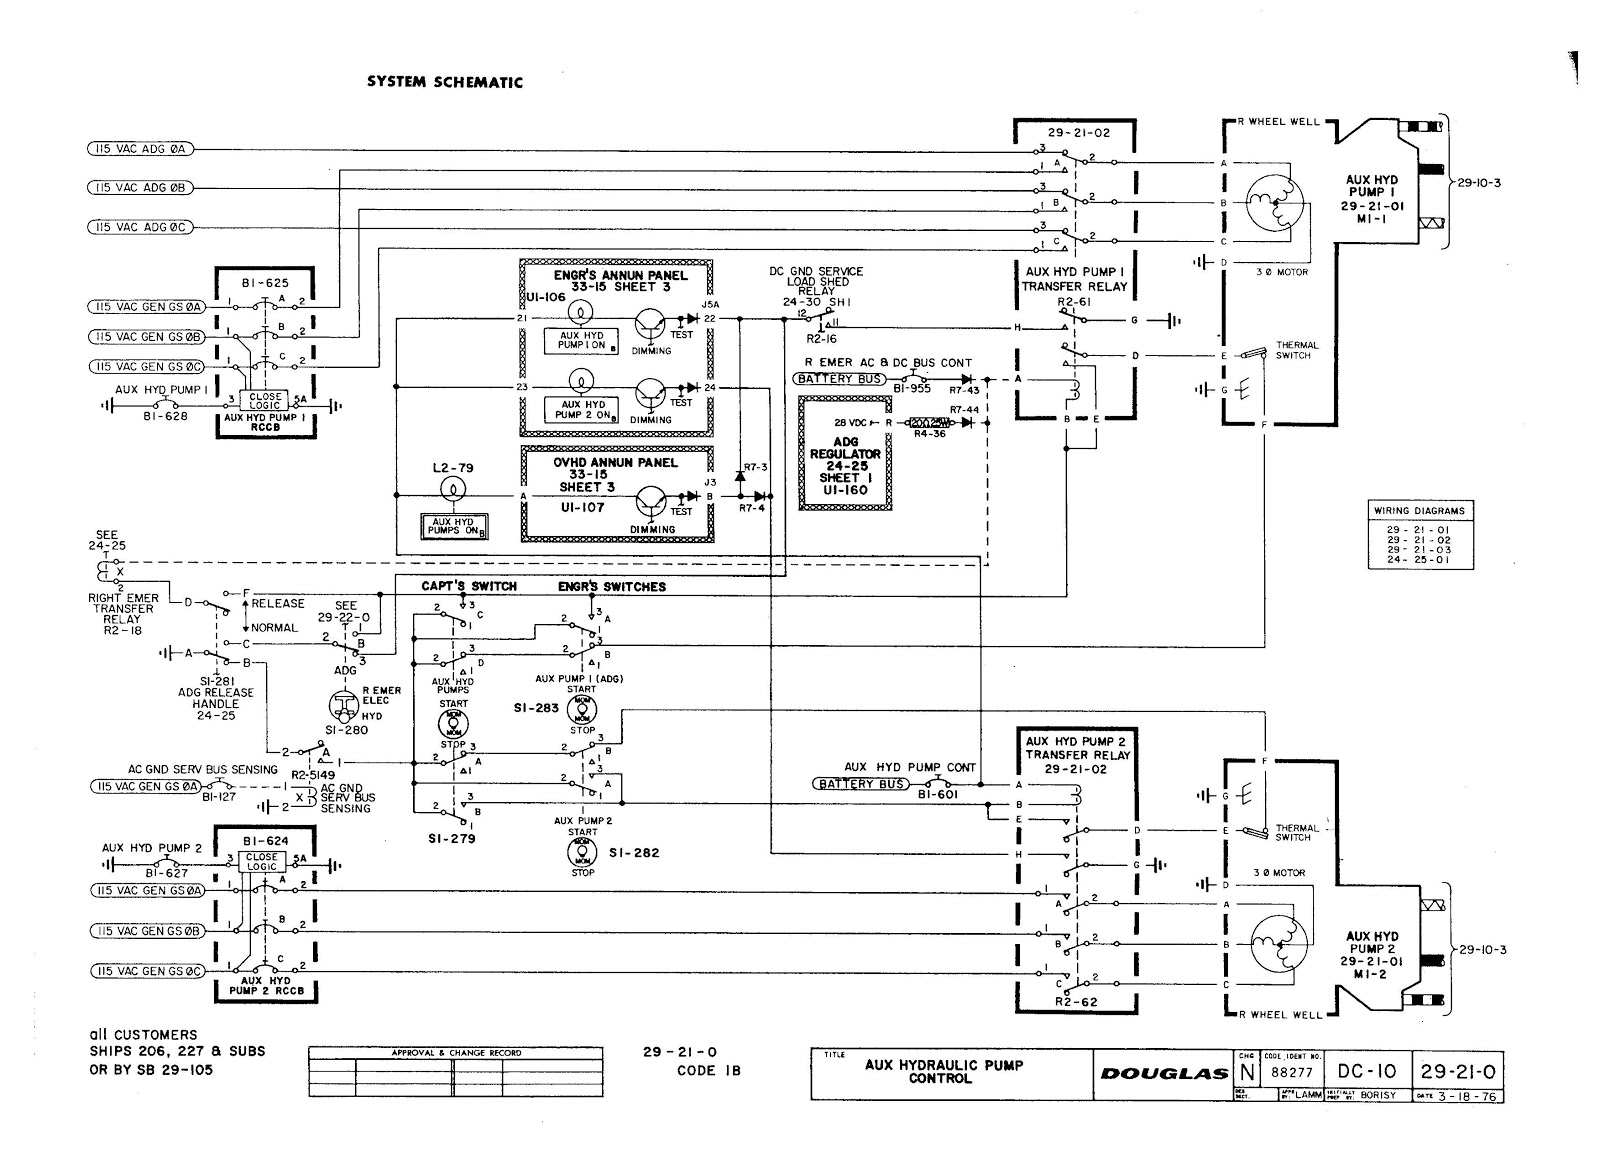 Jayco 12 Pin Wiring Diagram also Aircraft Wiring And Schematic Diagrams in addition Davis Monthan Afb Amarg Airplane Boneyard together with 118364598 9658965896589658thomas Freightliner Schoolbus C2 Fs65 Workshop together with Blue Bird Vision. on thomas c2 wiring diagram